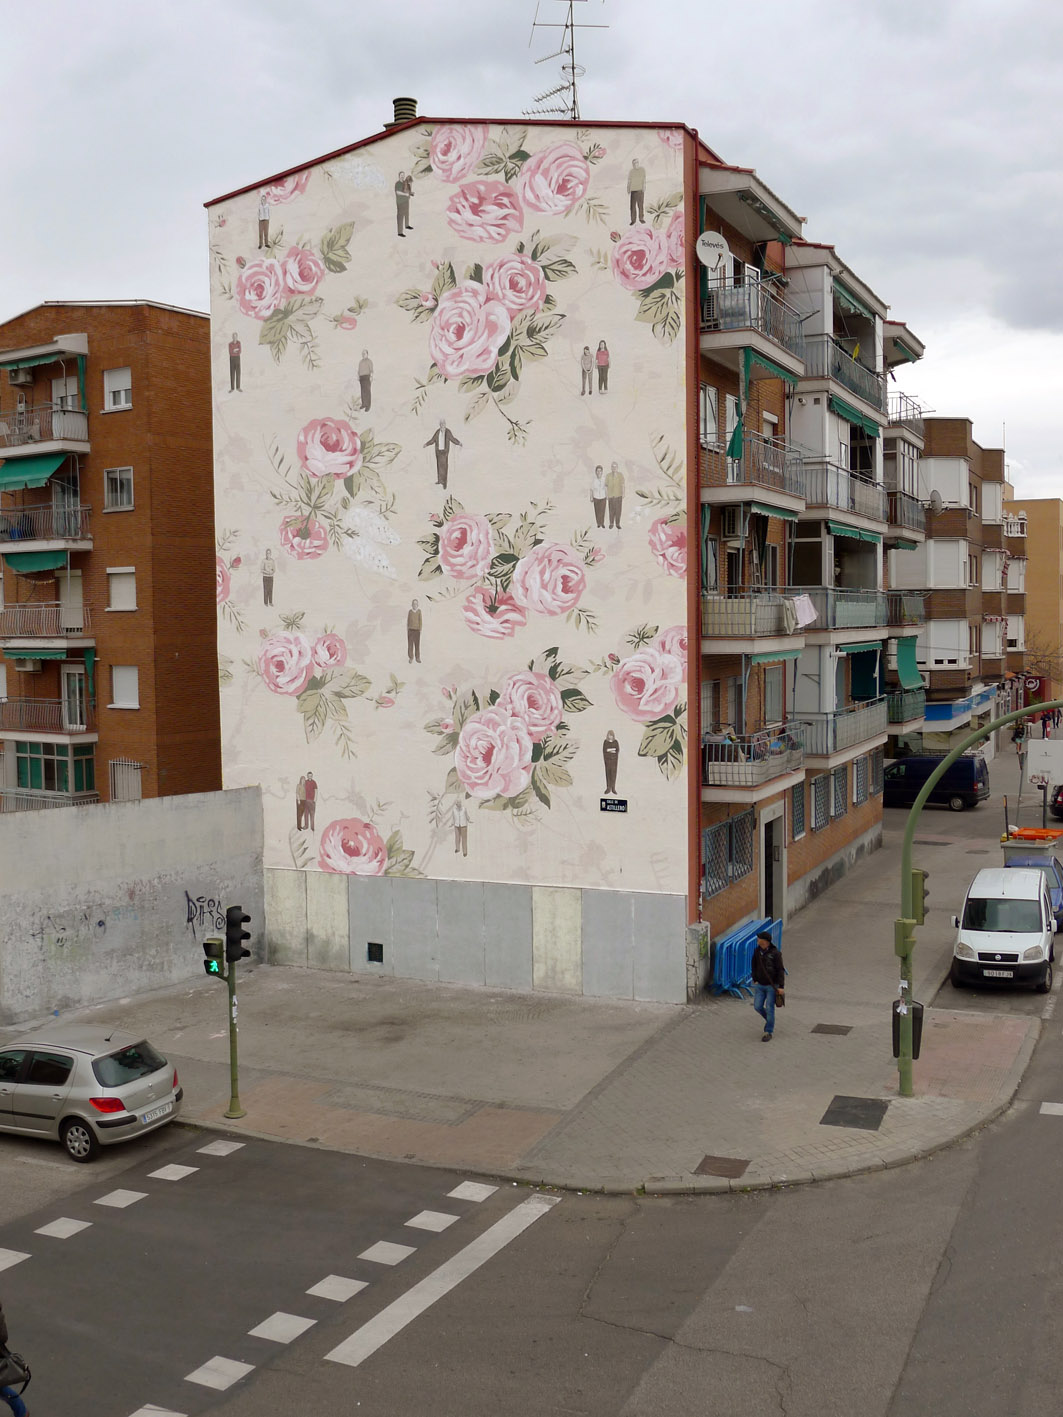 escif-new-mural-in-madrid-spain-01